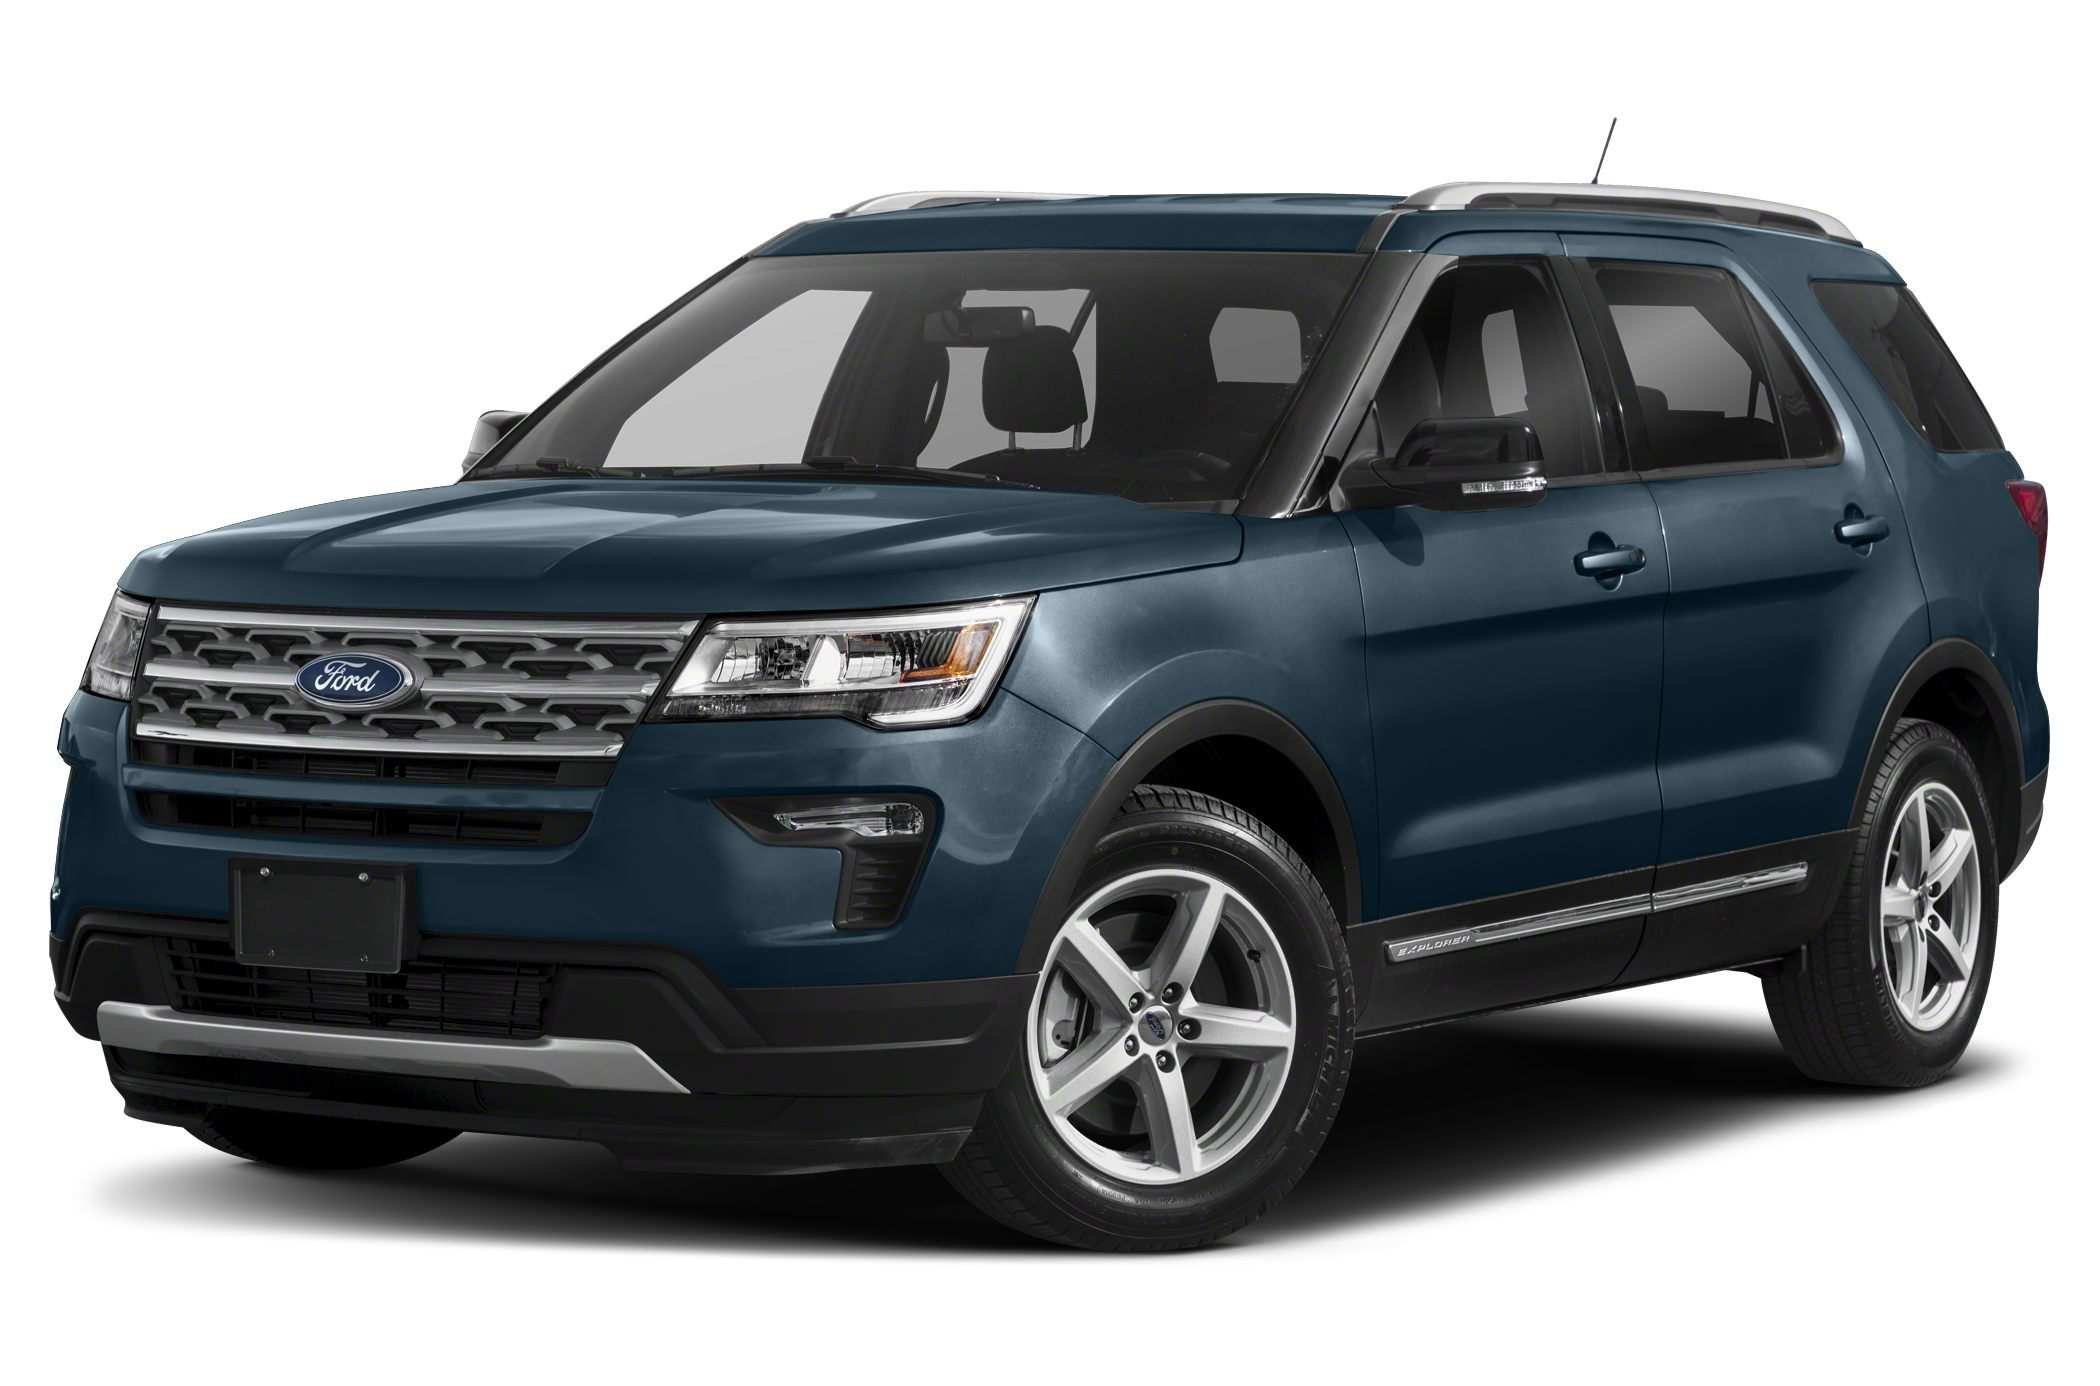 49 All New 2019 The Ford Explorer Model